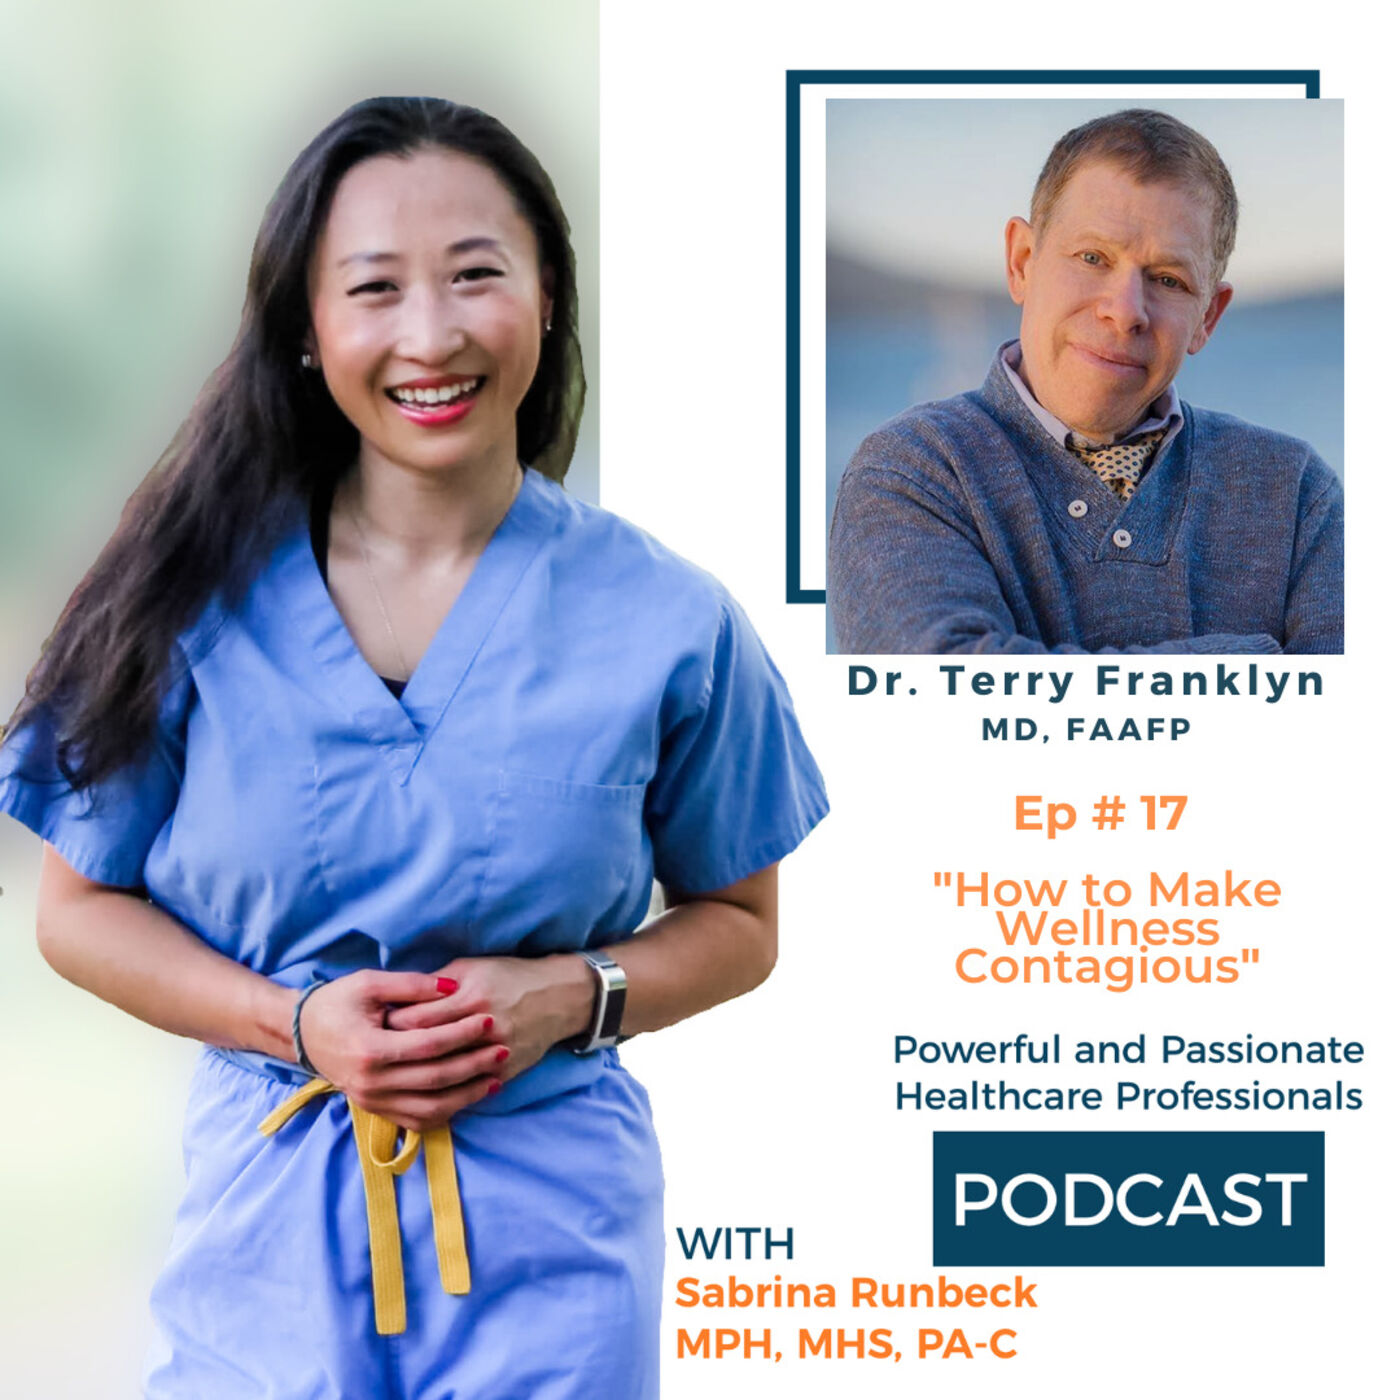 Ep 17 - How to Make Wellness Contagious with Dr. Terry L Franklin